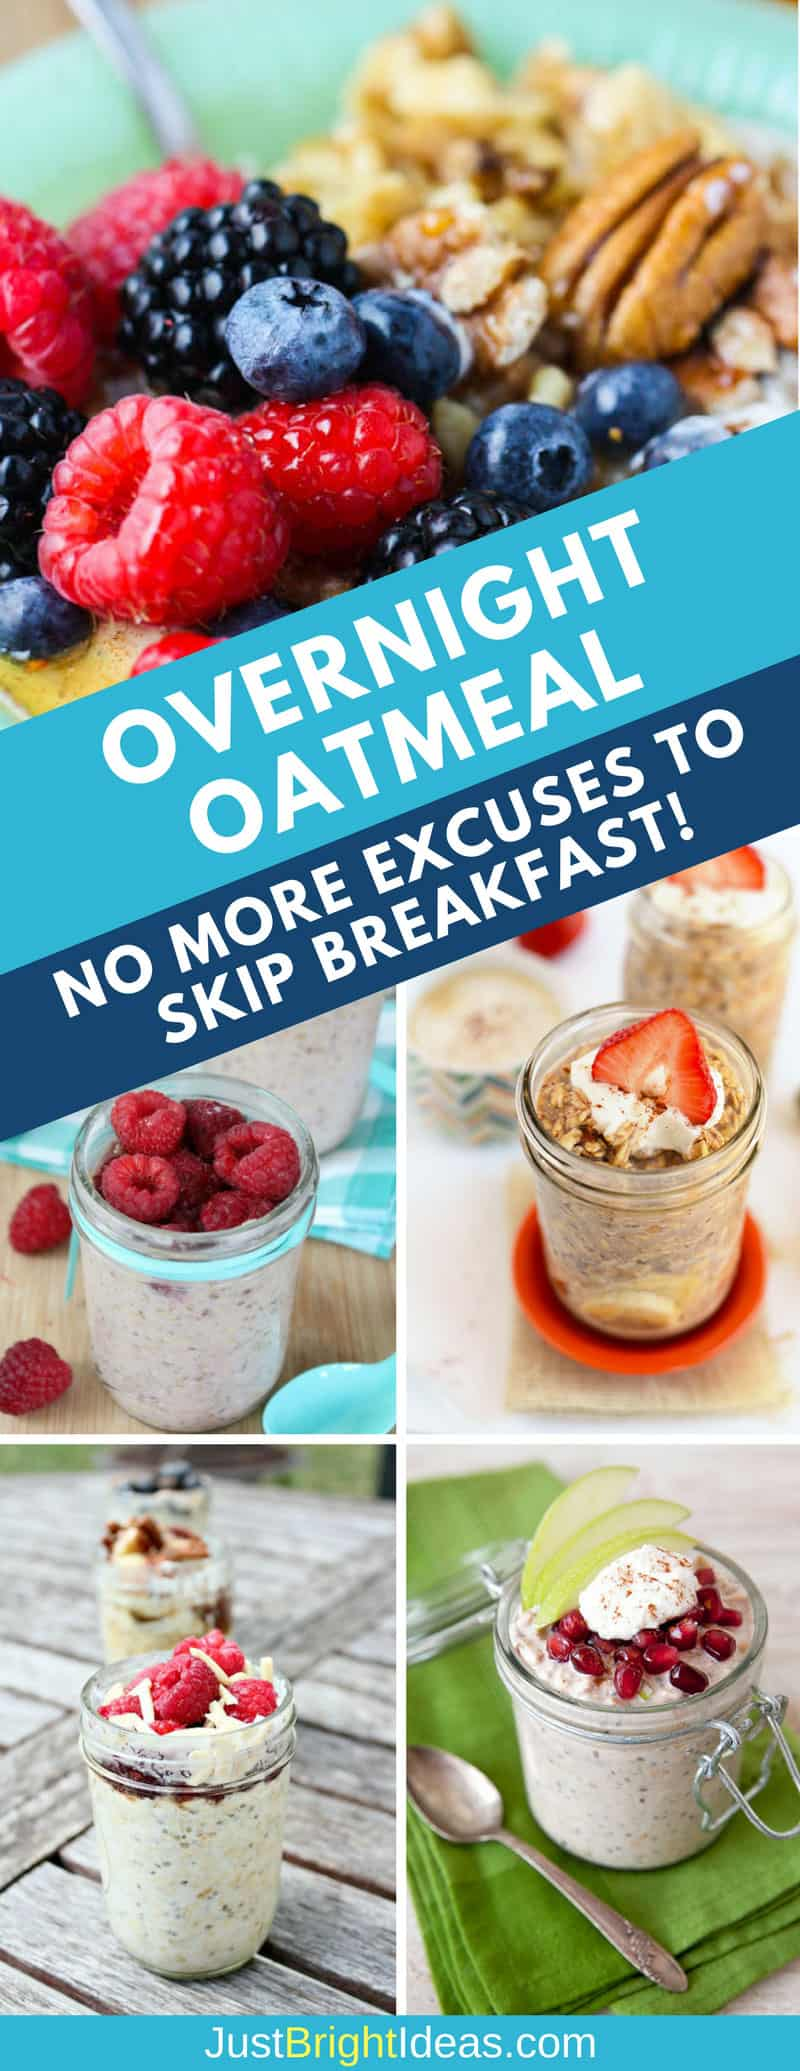 Overnight Oatmeal - Pinterest 3